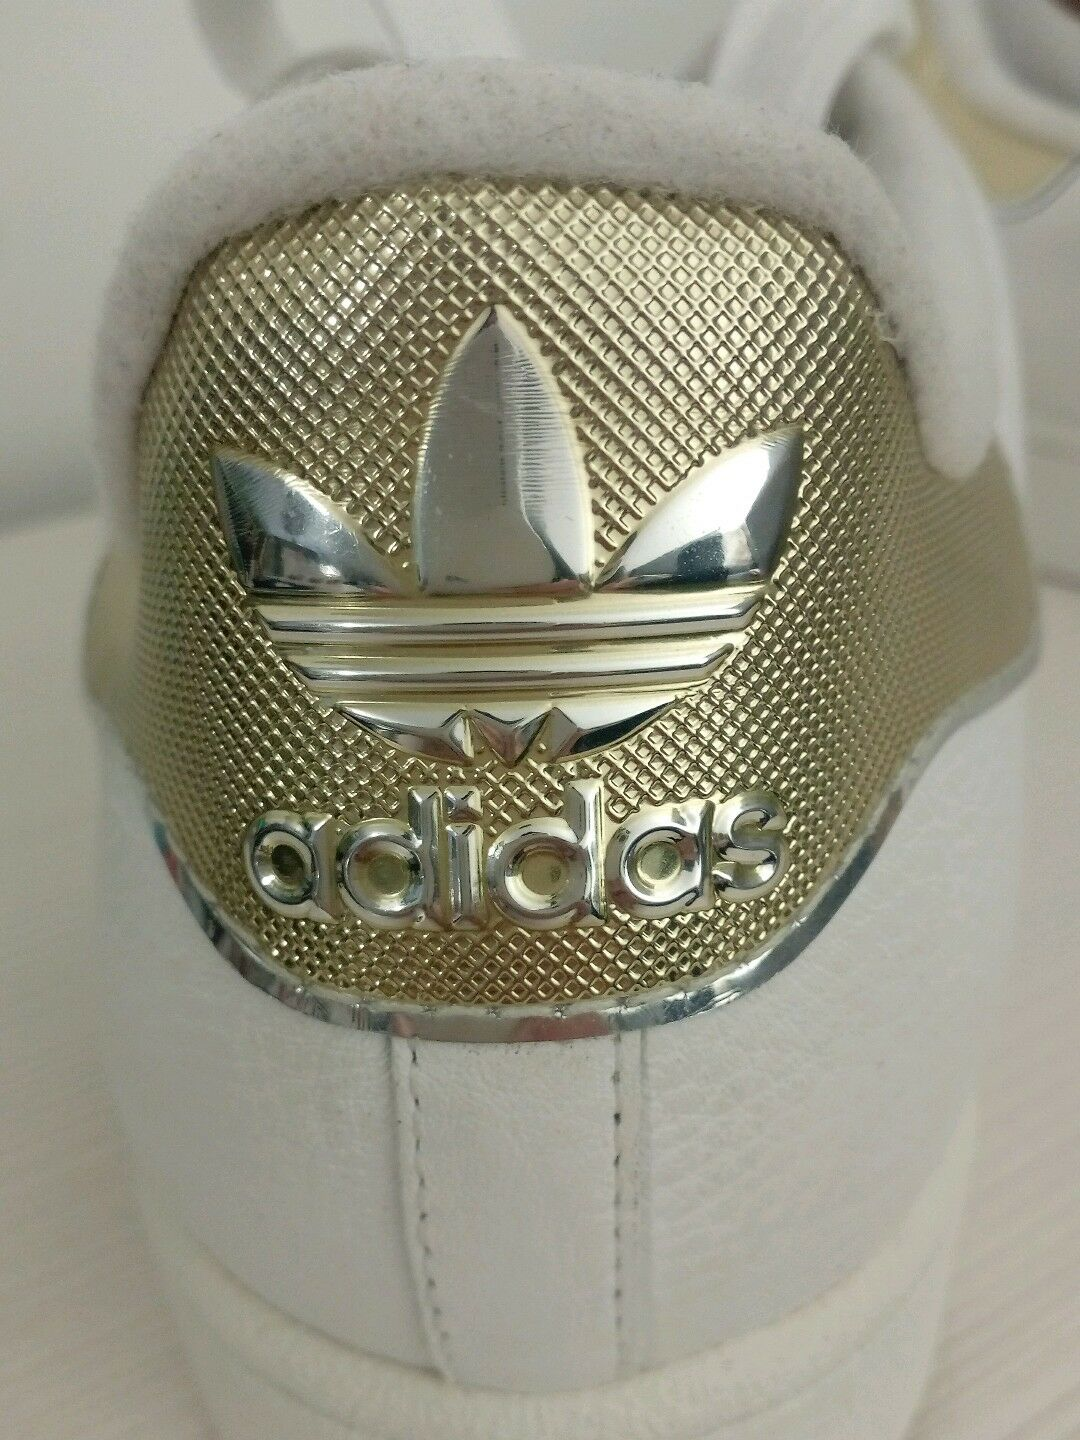 Scarpe da Ginnastica Adidas Superstar 2 White Limited Limited Limited Rare 3D Color Gold-Platinum US 9.5 d24977